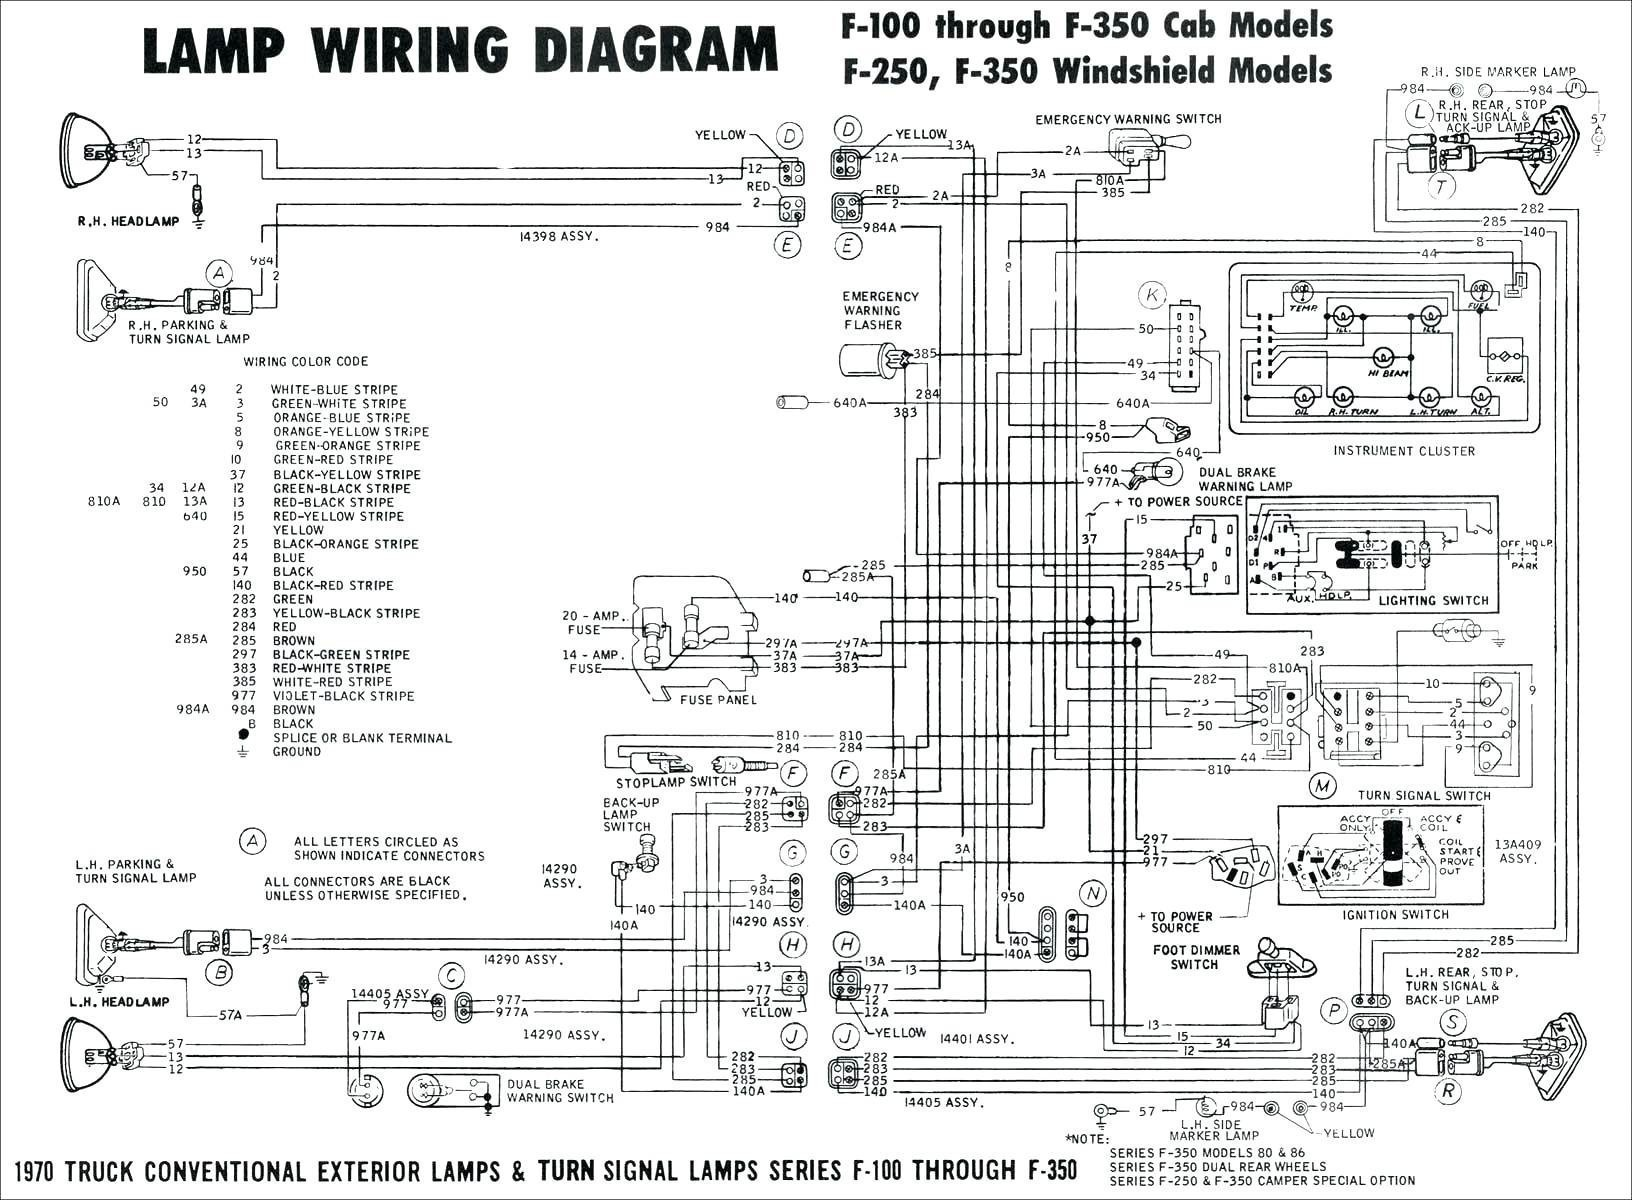 1999 Honda Accord V6 Engine Diagram 1997 Accord Fuse Diagram Layout Wiring Diagrams • Of 1999 Honda Accord V6 Engine Diagram 2003 Honda Accord Transmission Problems 4carpictures